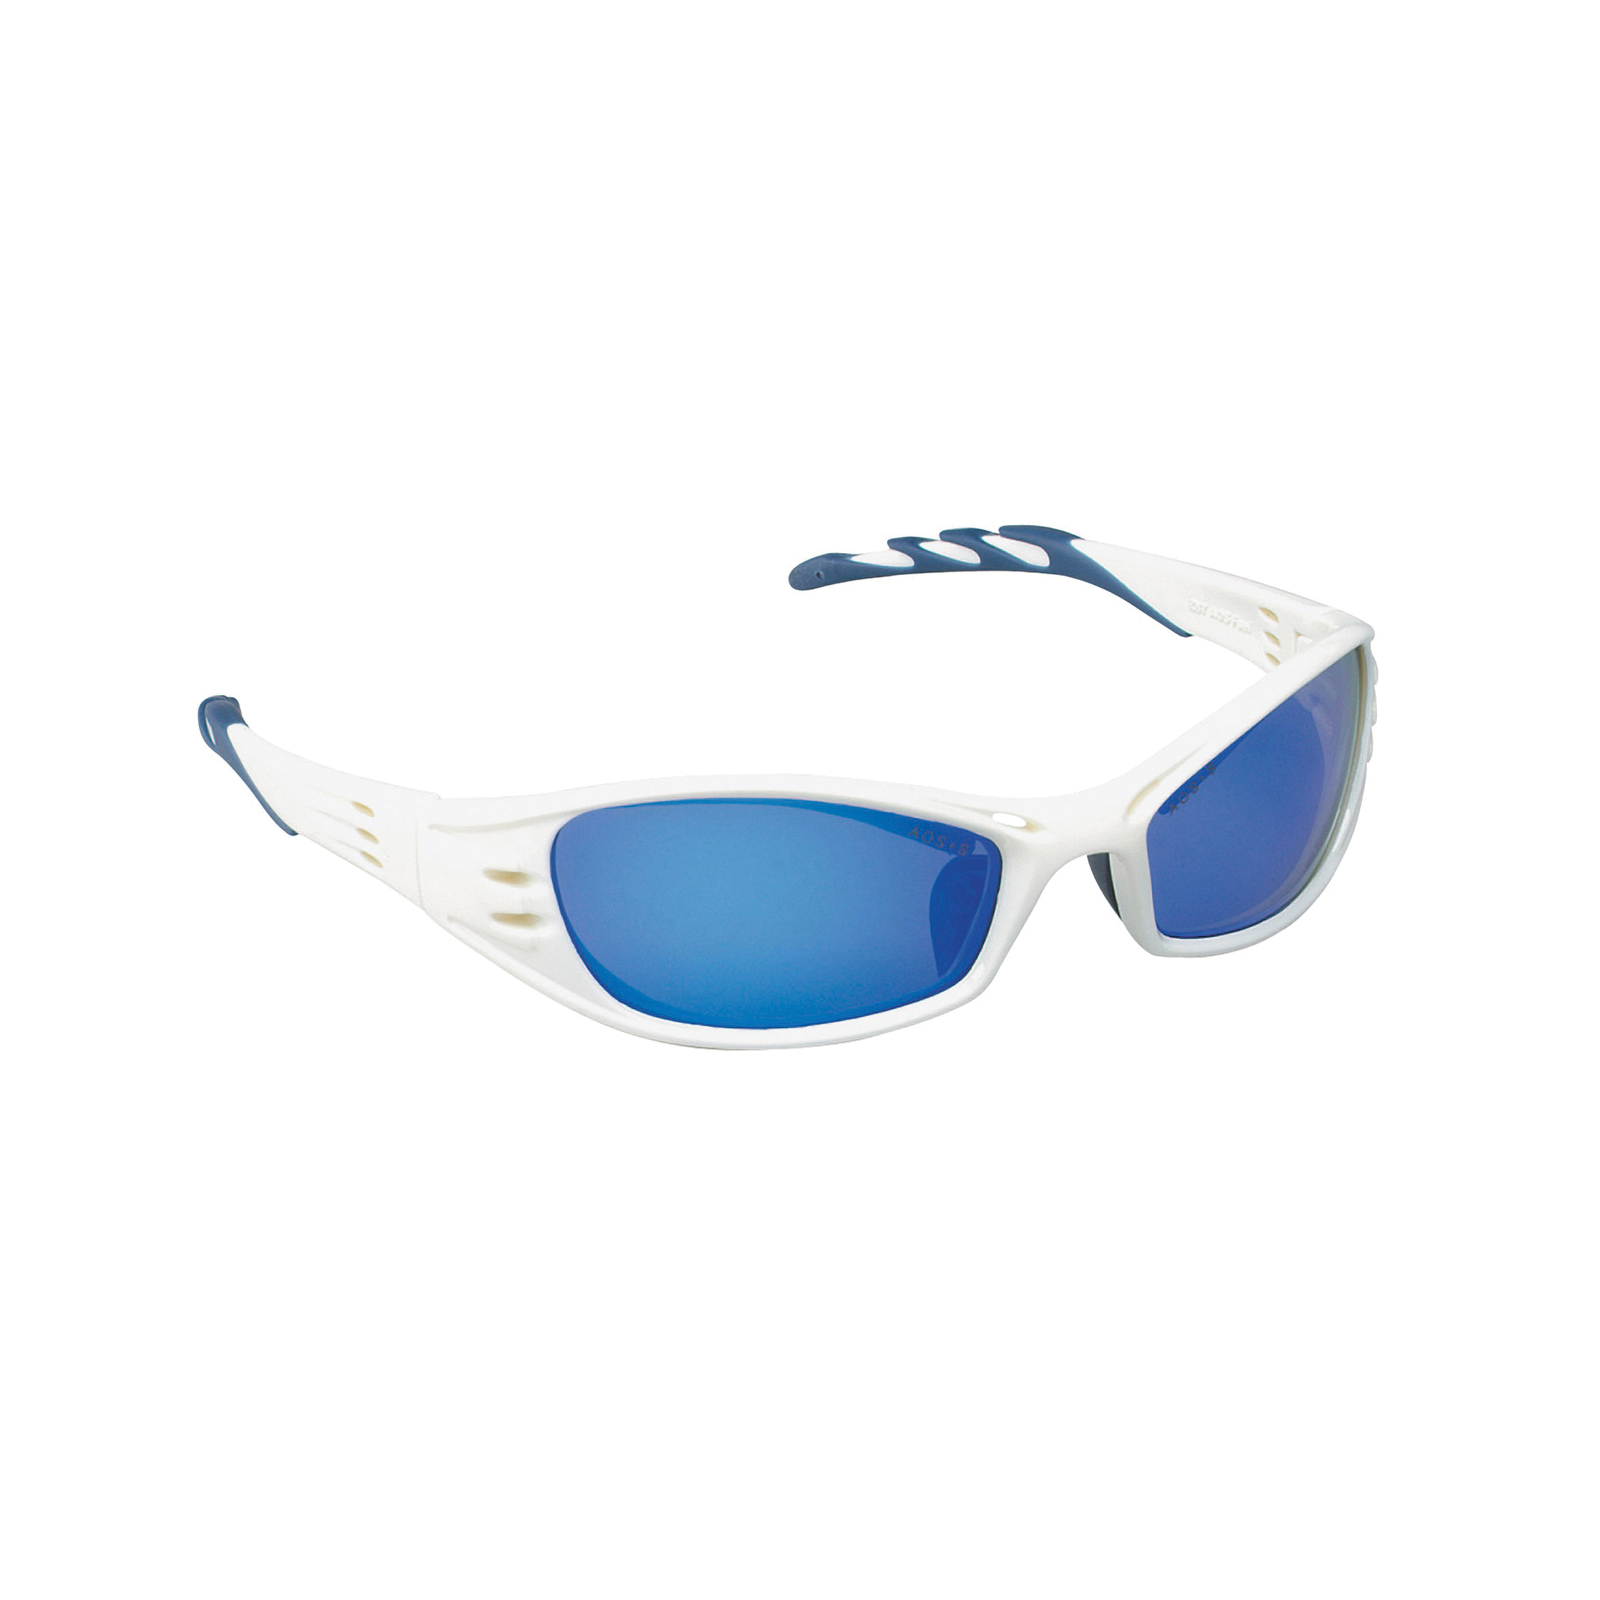 3M™ Fuel™ 078371-62159 11664-00000-10 Premium Protective Eyewear, Anti-Scratch Blue Mirror Lens, Full Framed Glacier White Plastic Frame, Polycarbonate Lens, Specifications Met: ANSI Z87.1-2015